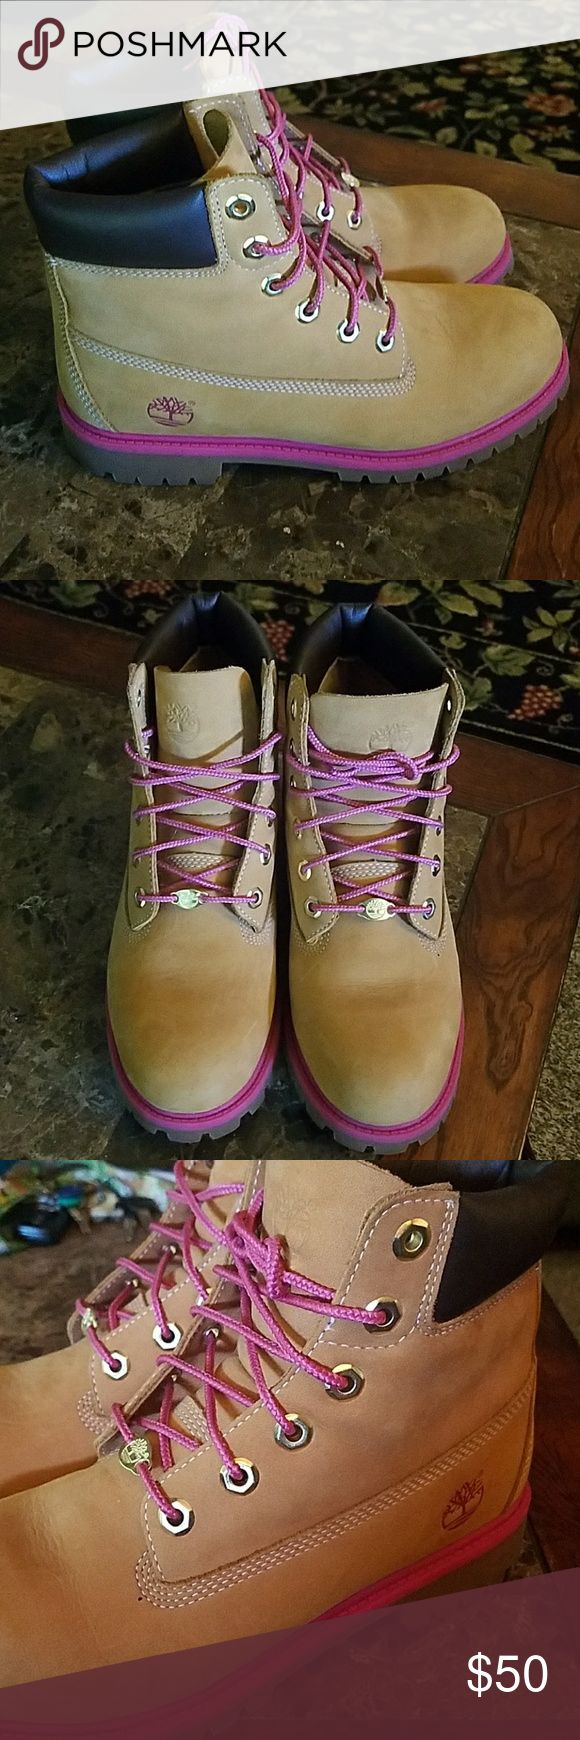 Pink Accented Boots These are super clean Timberlands with pink accents. Purchased from another posher, but I just never wore them as you can see from the soles & condition of the leather. Come without soles. They look brand new. Feminine & Bada$$ 🌹 Timberland Shoes Ankle Boots & Booties